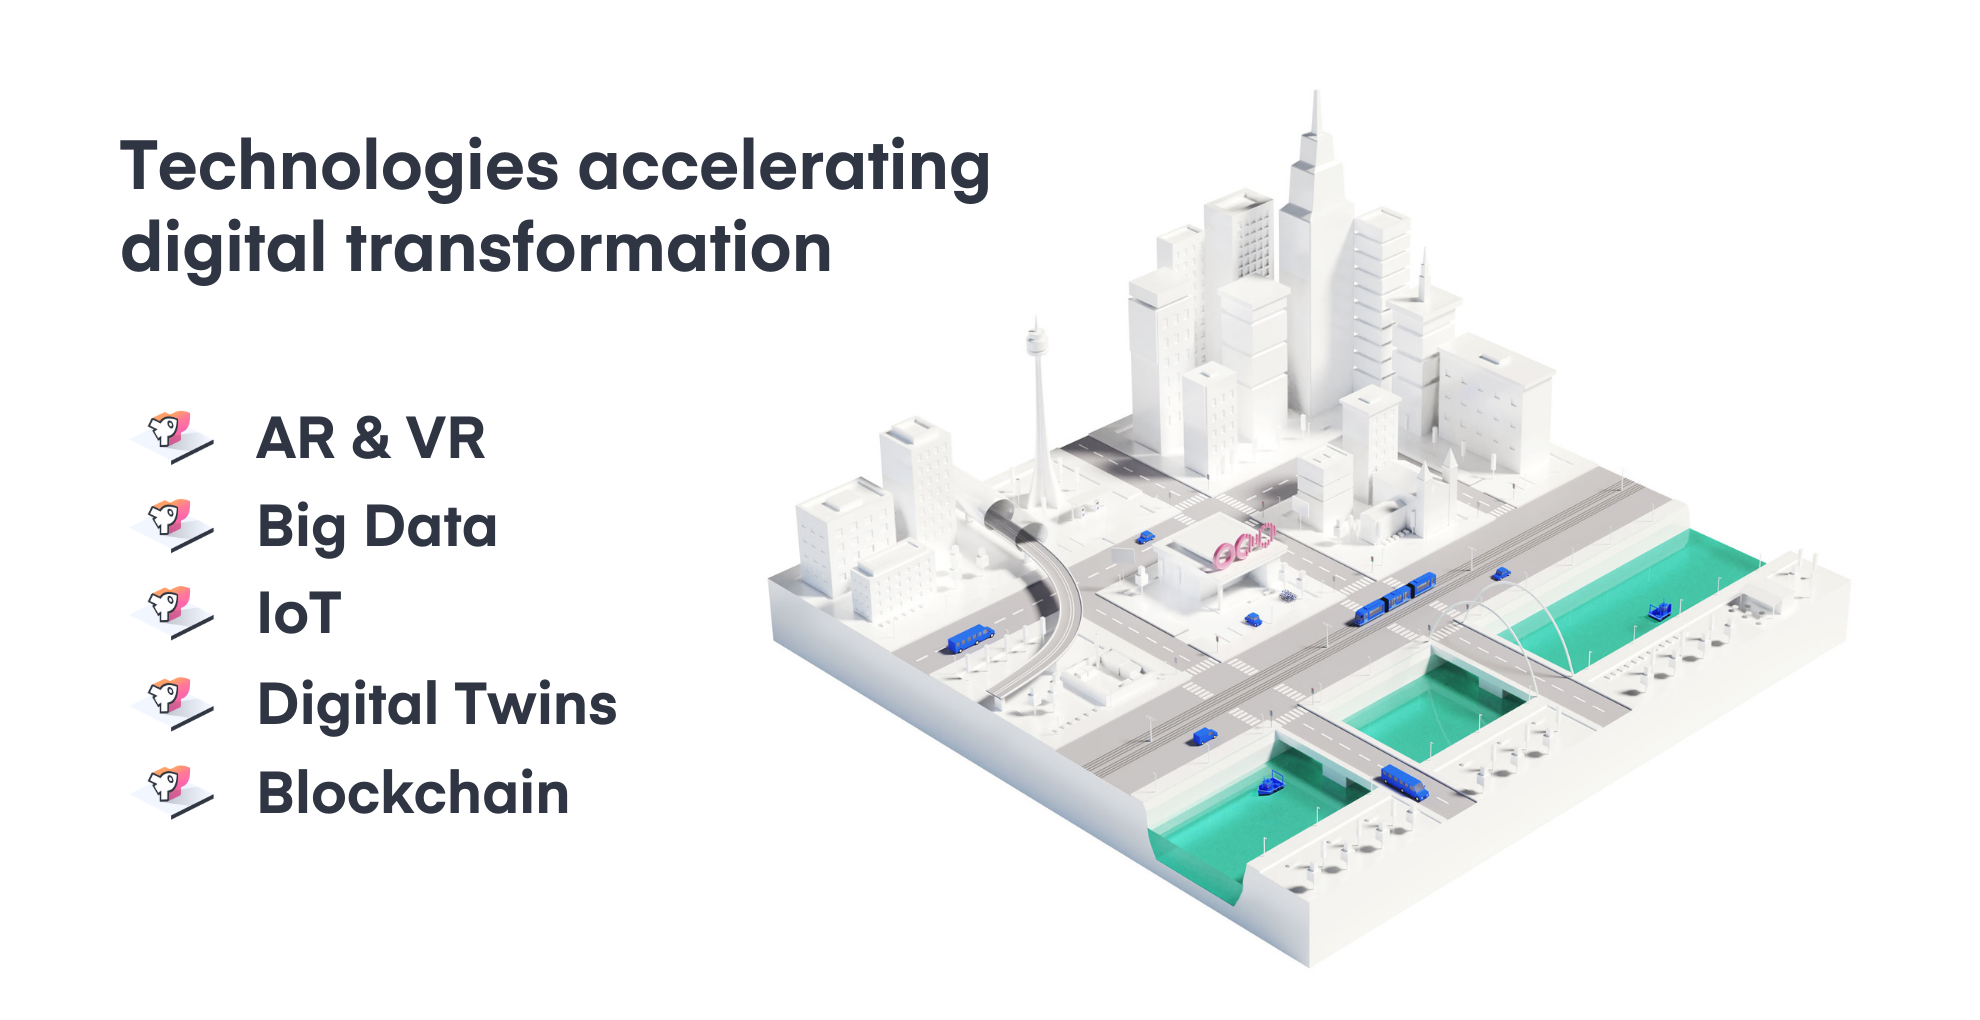 A model from Nomoko showing how emerging technologies are changing cities